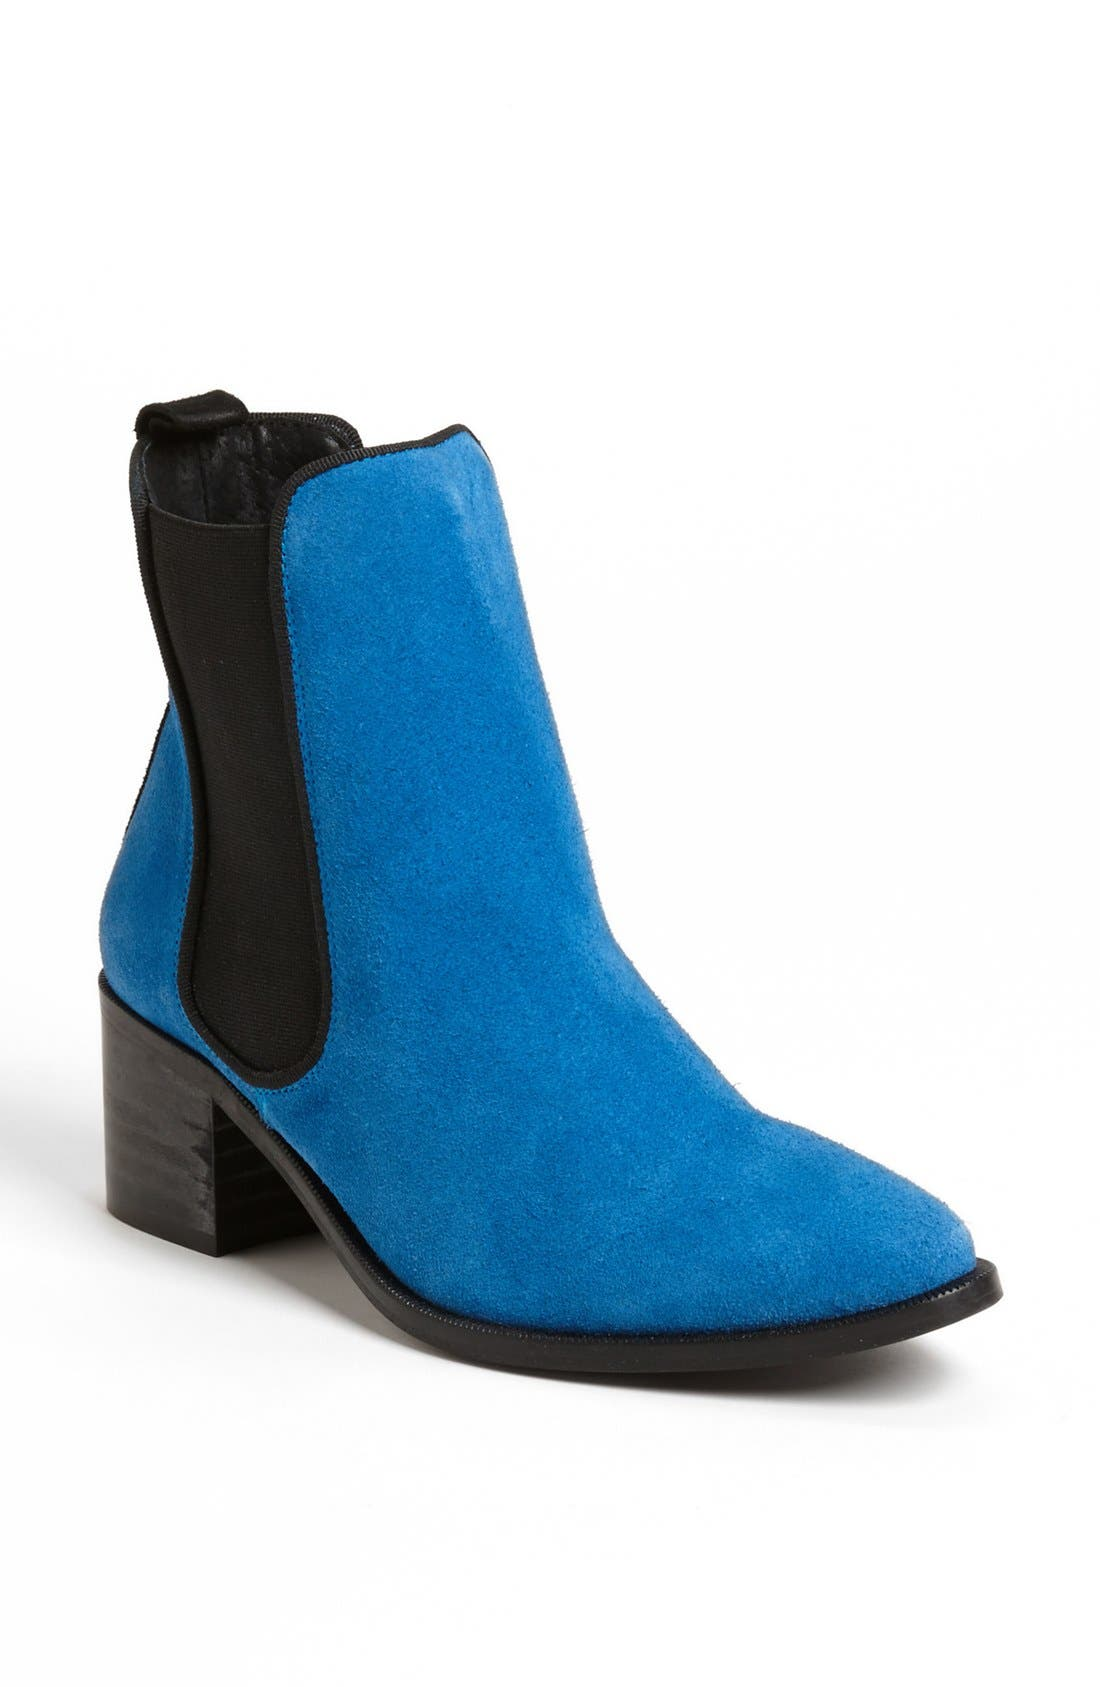 Main Image - KG Kurt Geiger 'Sonic' Suede Boot